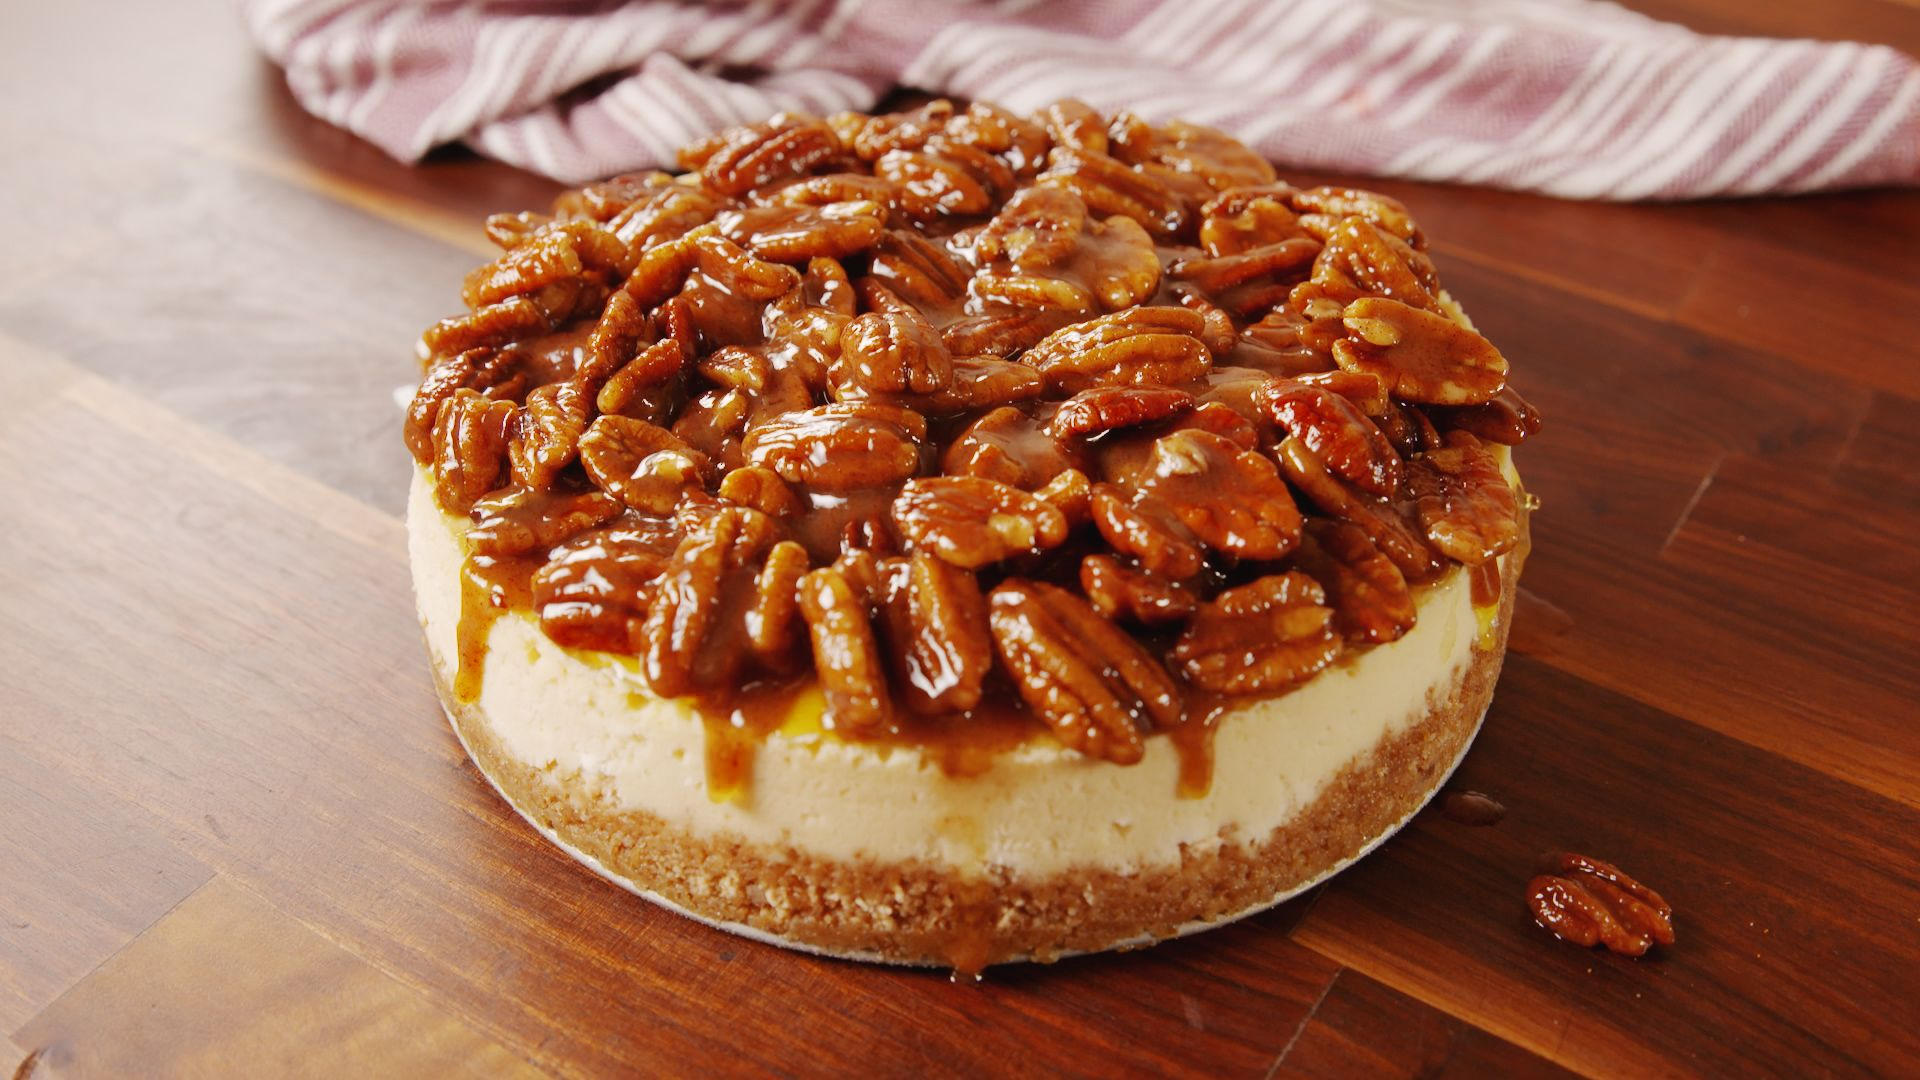 Breathtaking Pecan Pie Cheesecake Recipe How To Make Pecan Cheesecake Sourn Pecan Pie Recipe Alton Brown Sourn Pecan Pie Recipe Divas Can Cook nice food Southern Pecan Pie Recipe